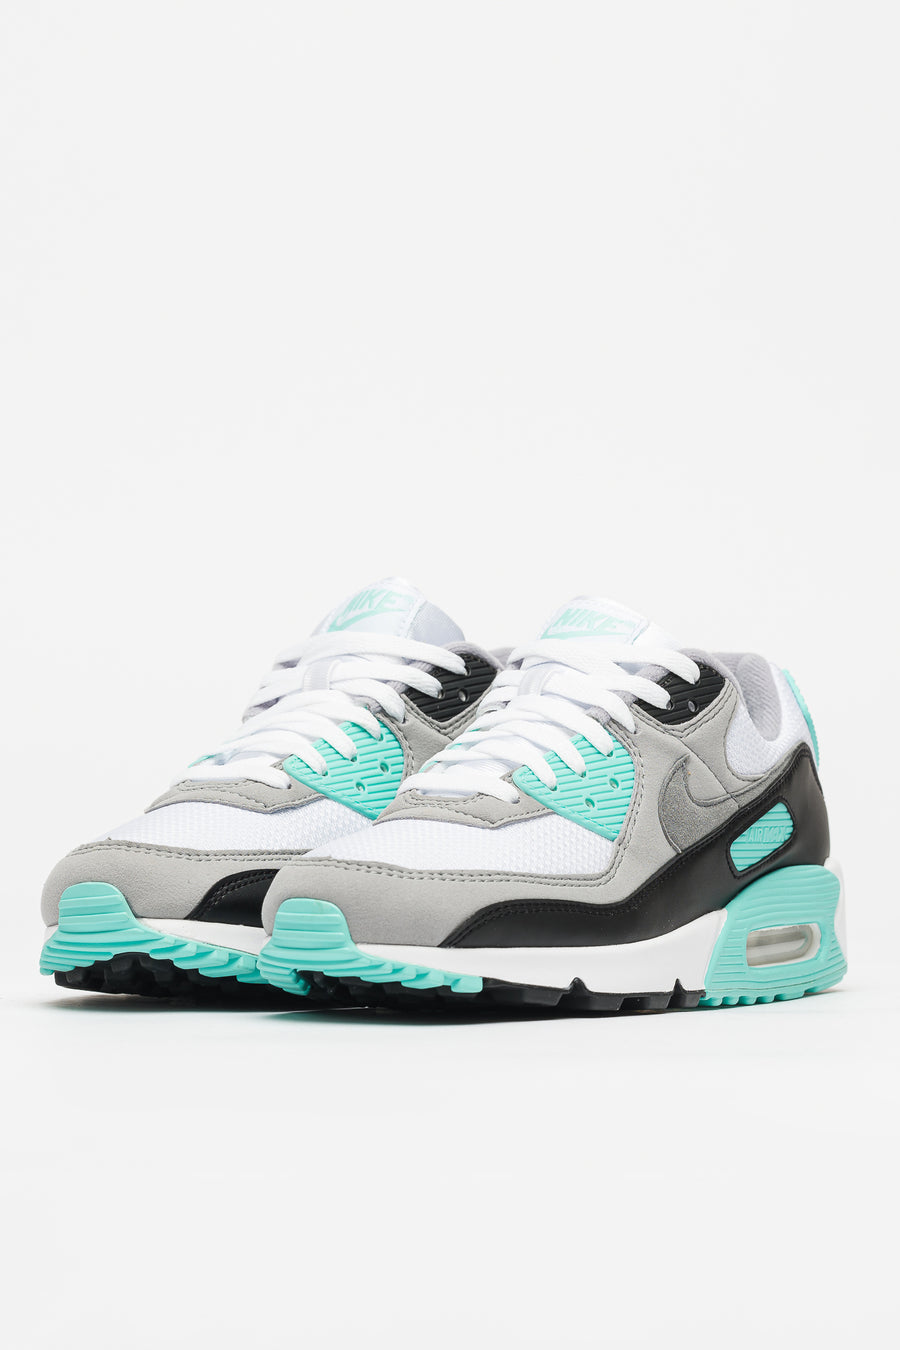 Air Max 90 in WhiteGreyTurquoise